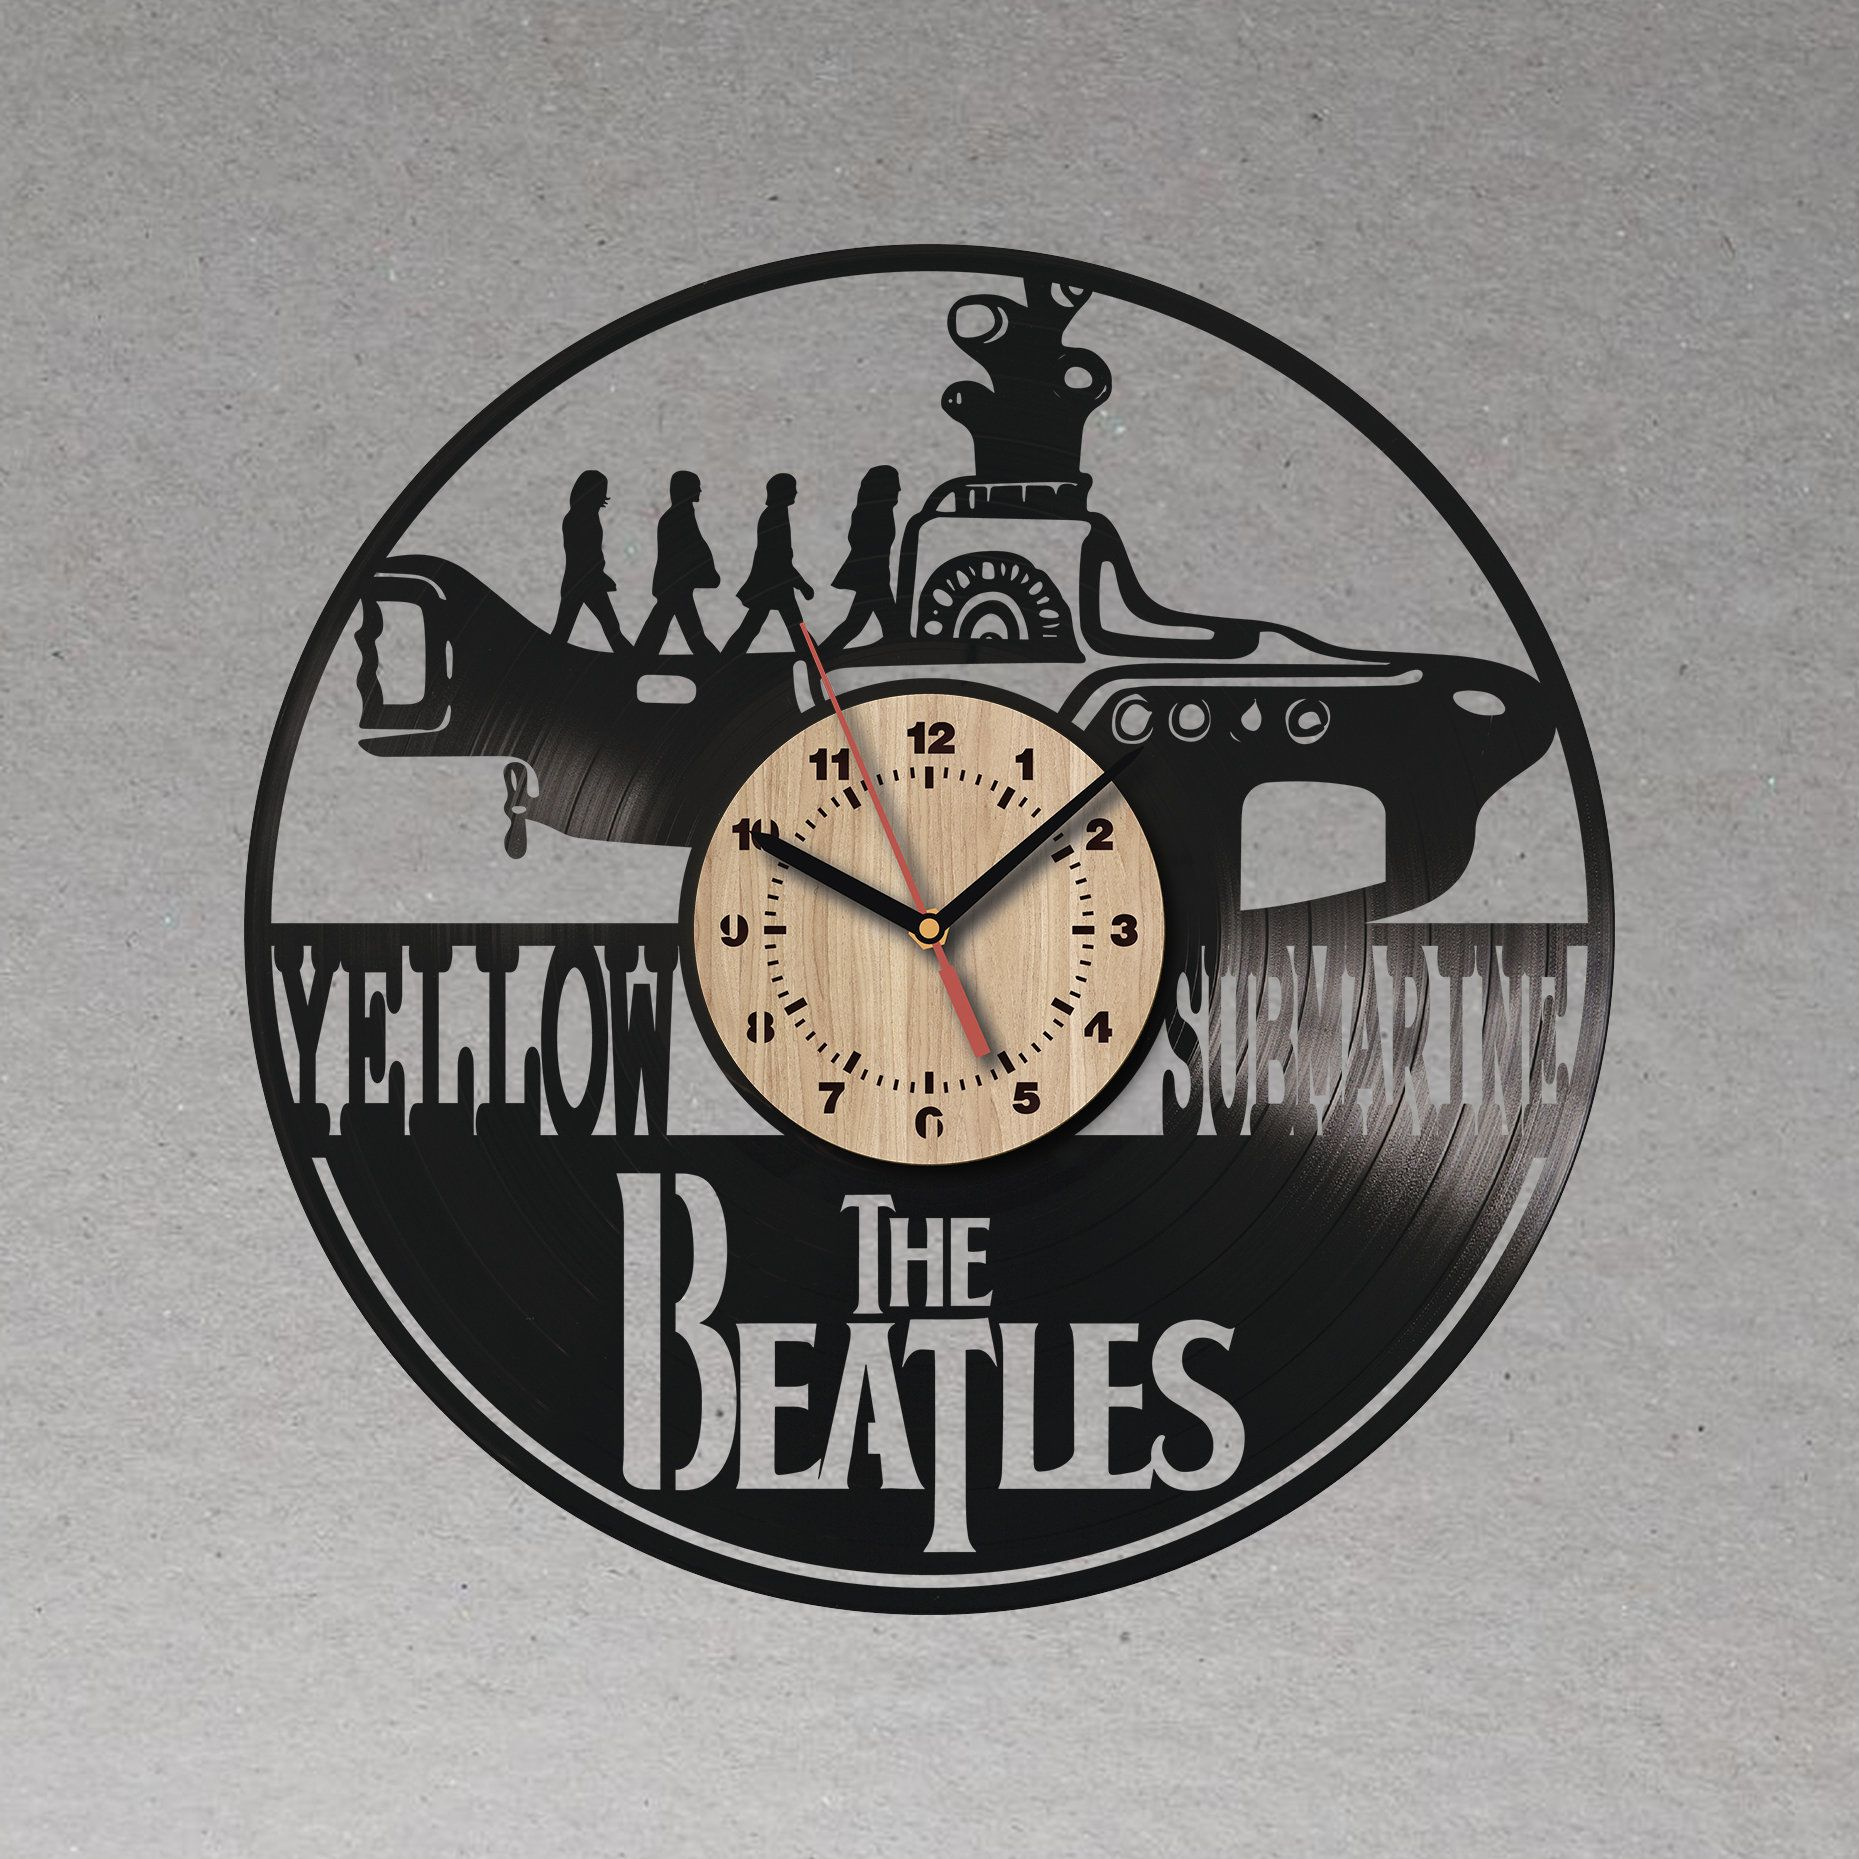 The Beatles Handmade Vinyl Wall Clock With Wooden Dial Original Home Decor Vinyl Wall Clock For Bedroom Origin In 2020 Bedroom Wall Clock Vinyl Record Clock Wall Clock